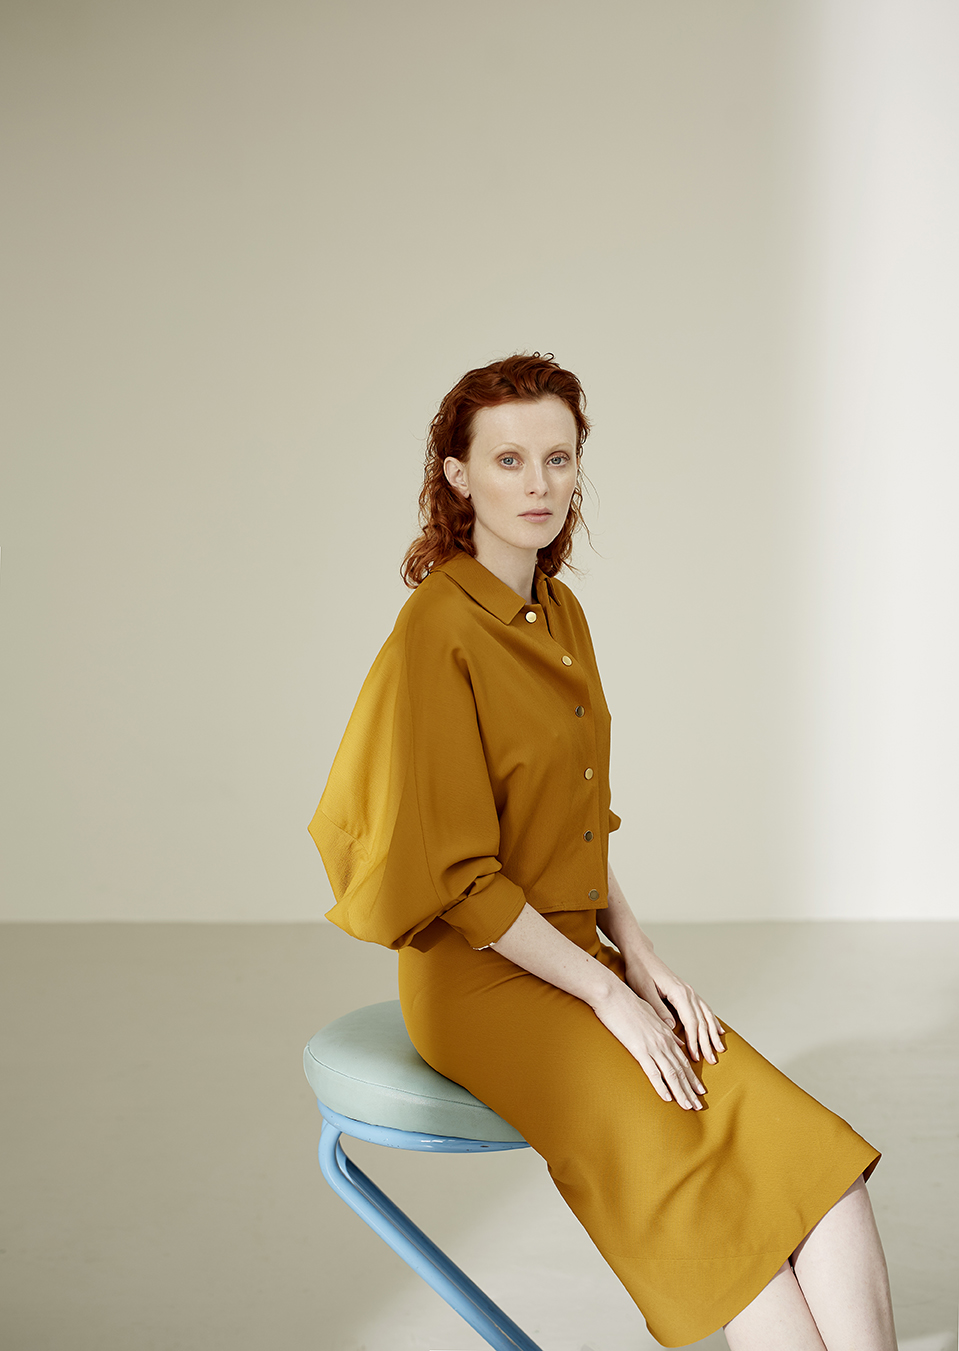 FF-Karen Elson Studio March17_09_044.jpg